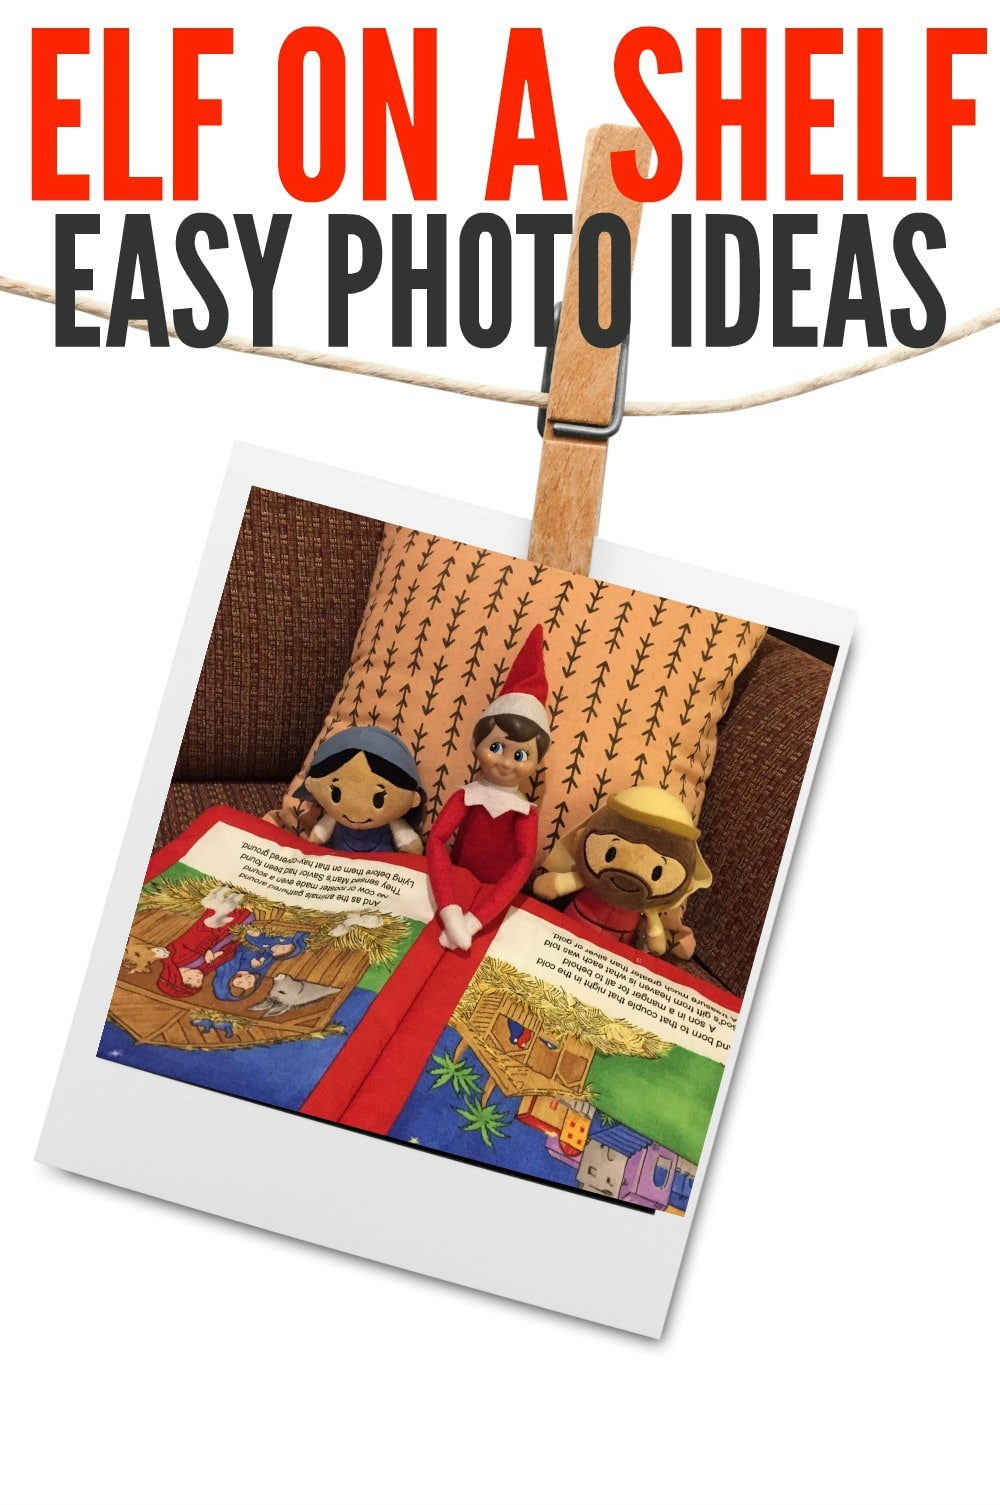 Elf on a Shelf Photo Ideas